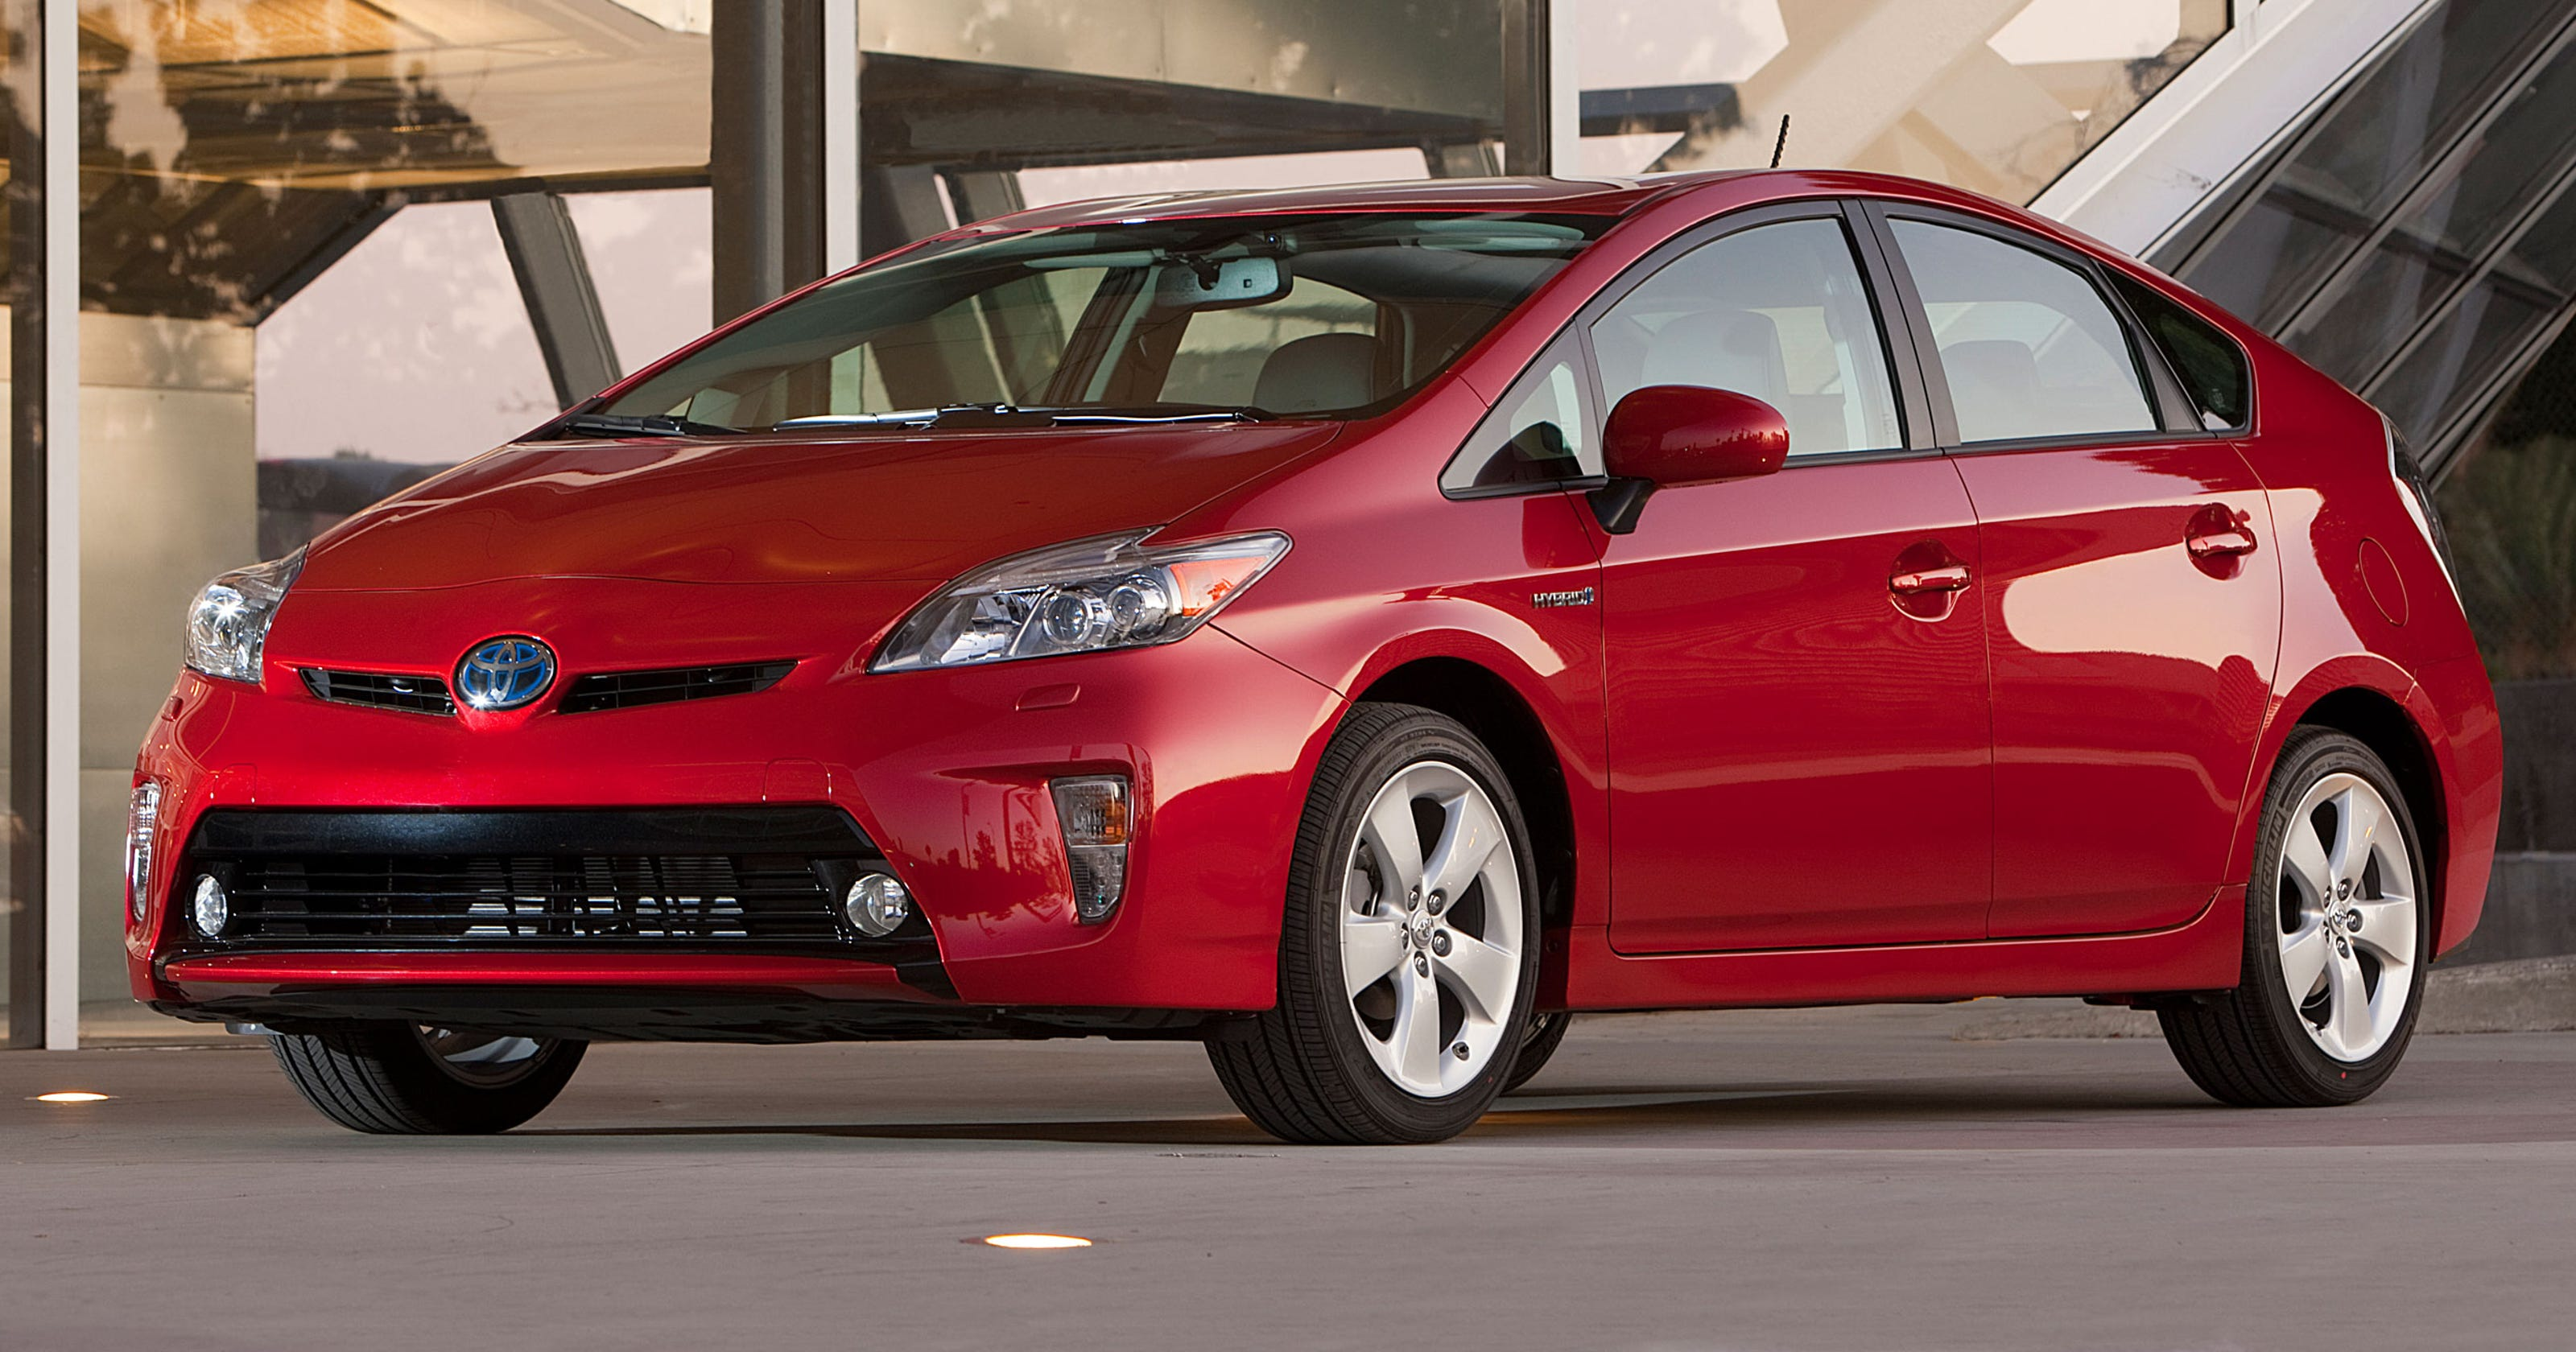 Toyota recalls 2 4M Prius hybrid cars that could stall